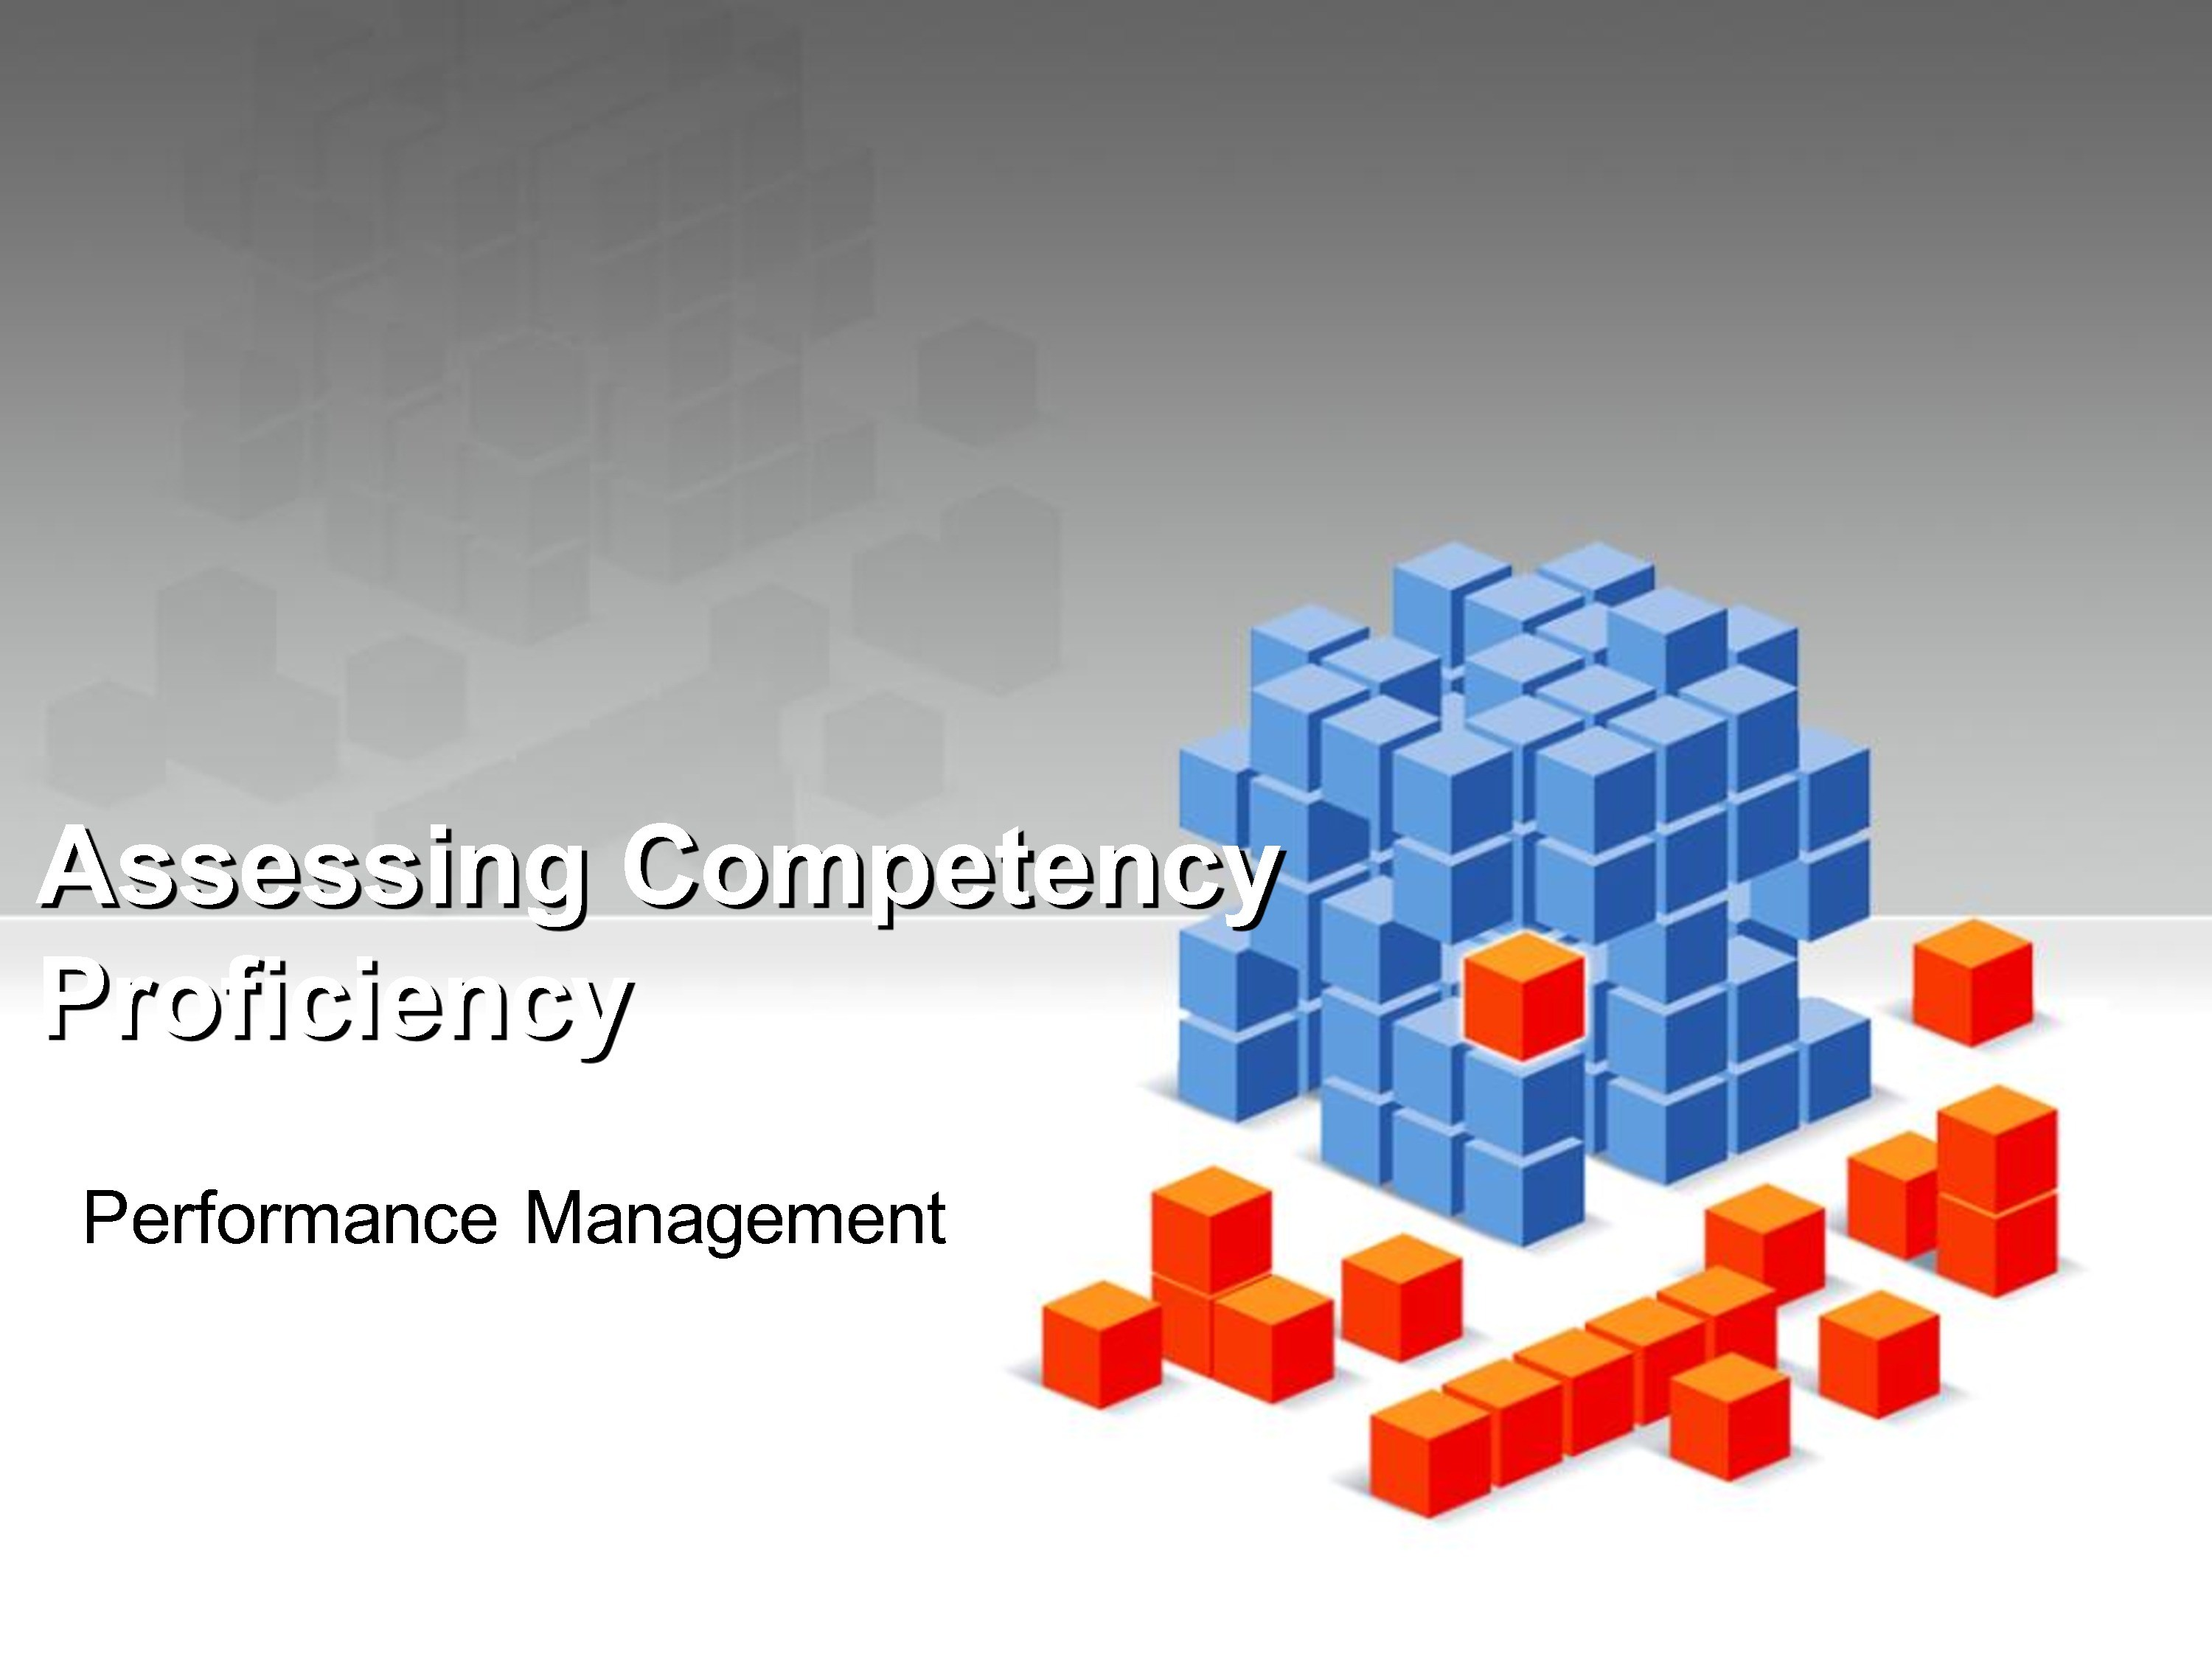 Assessing Competency Proficiency